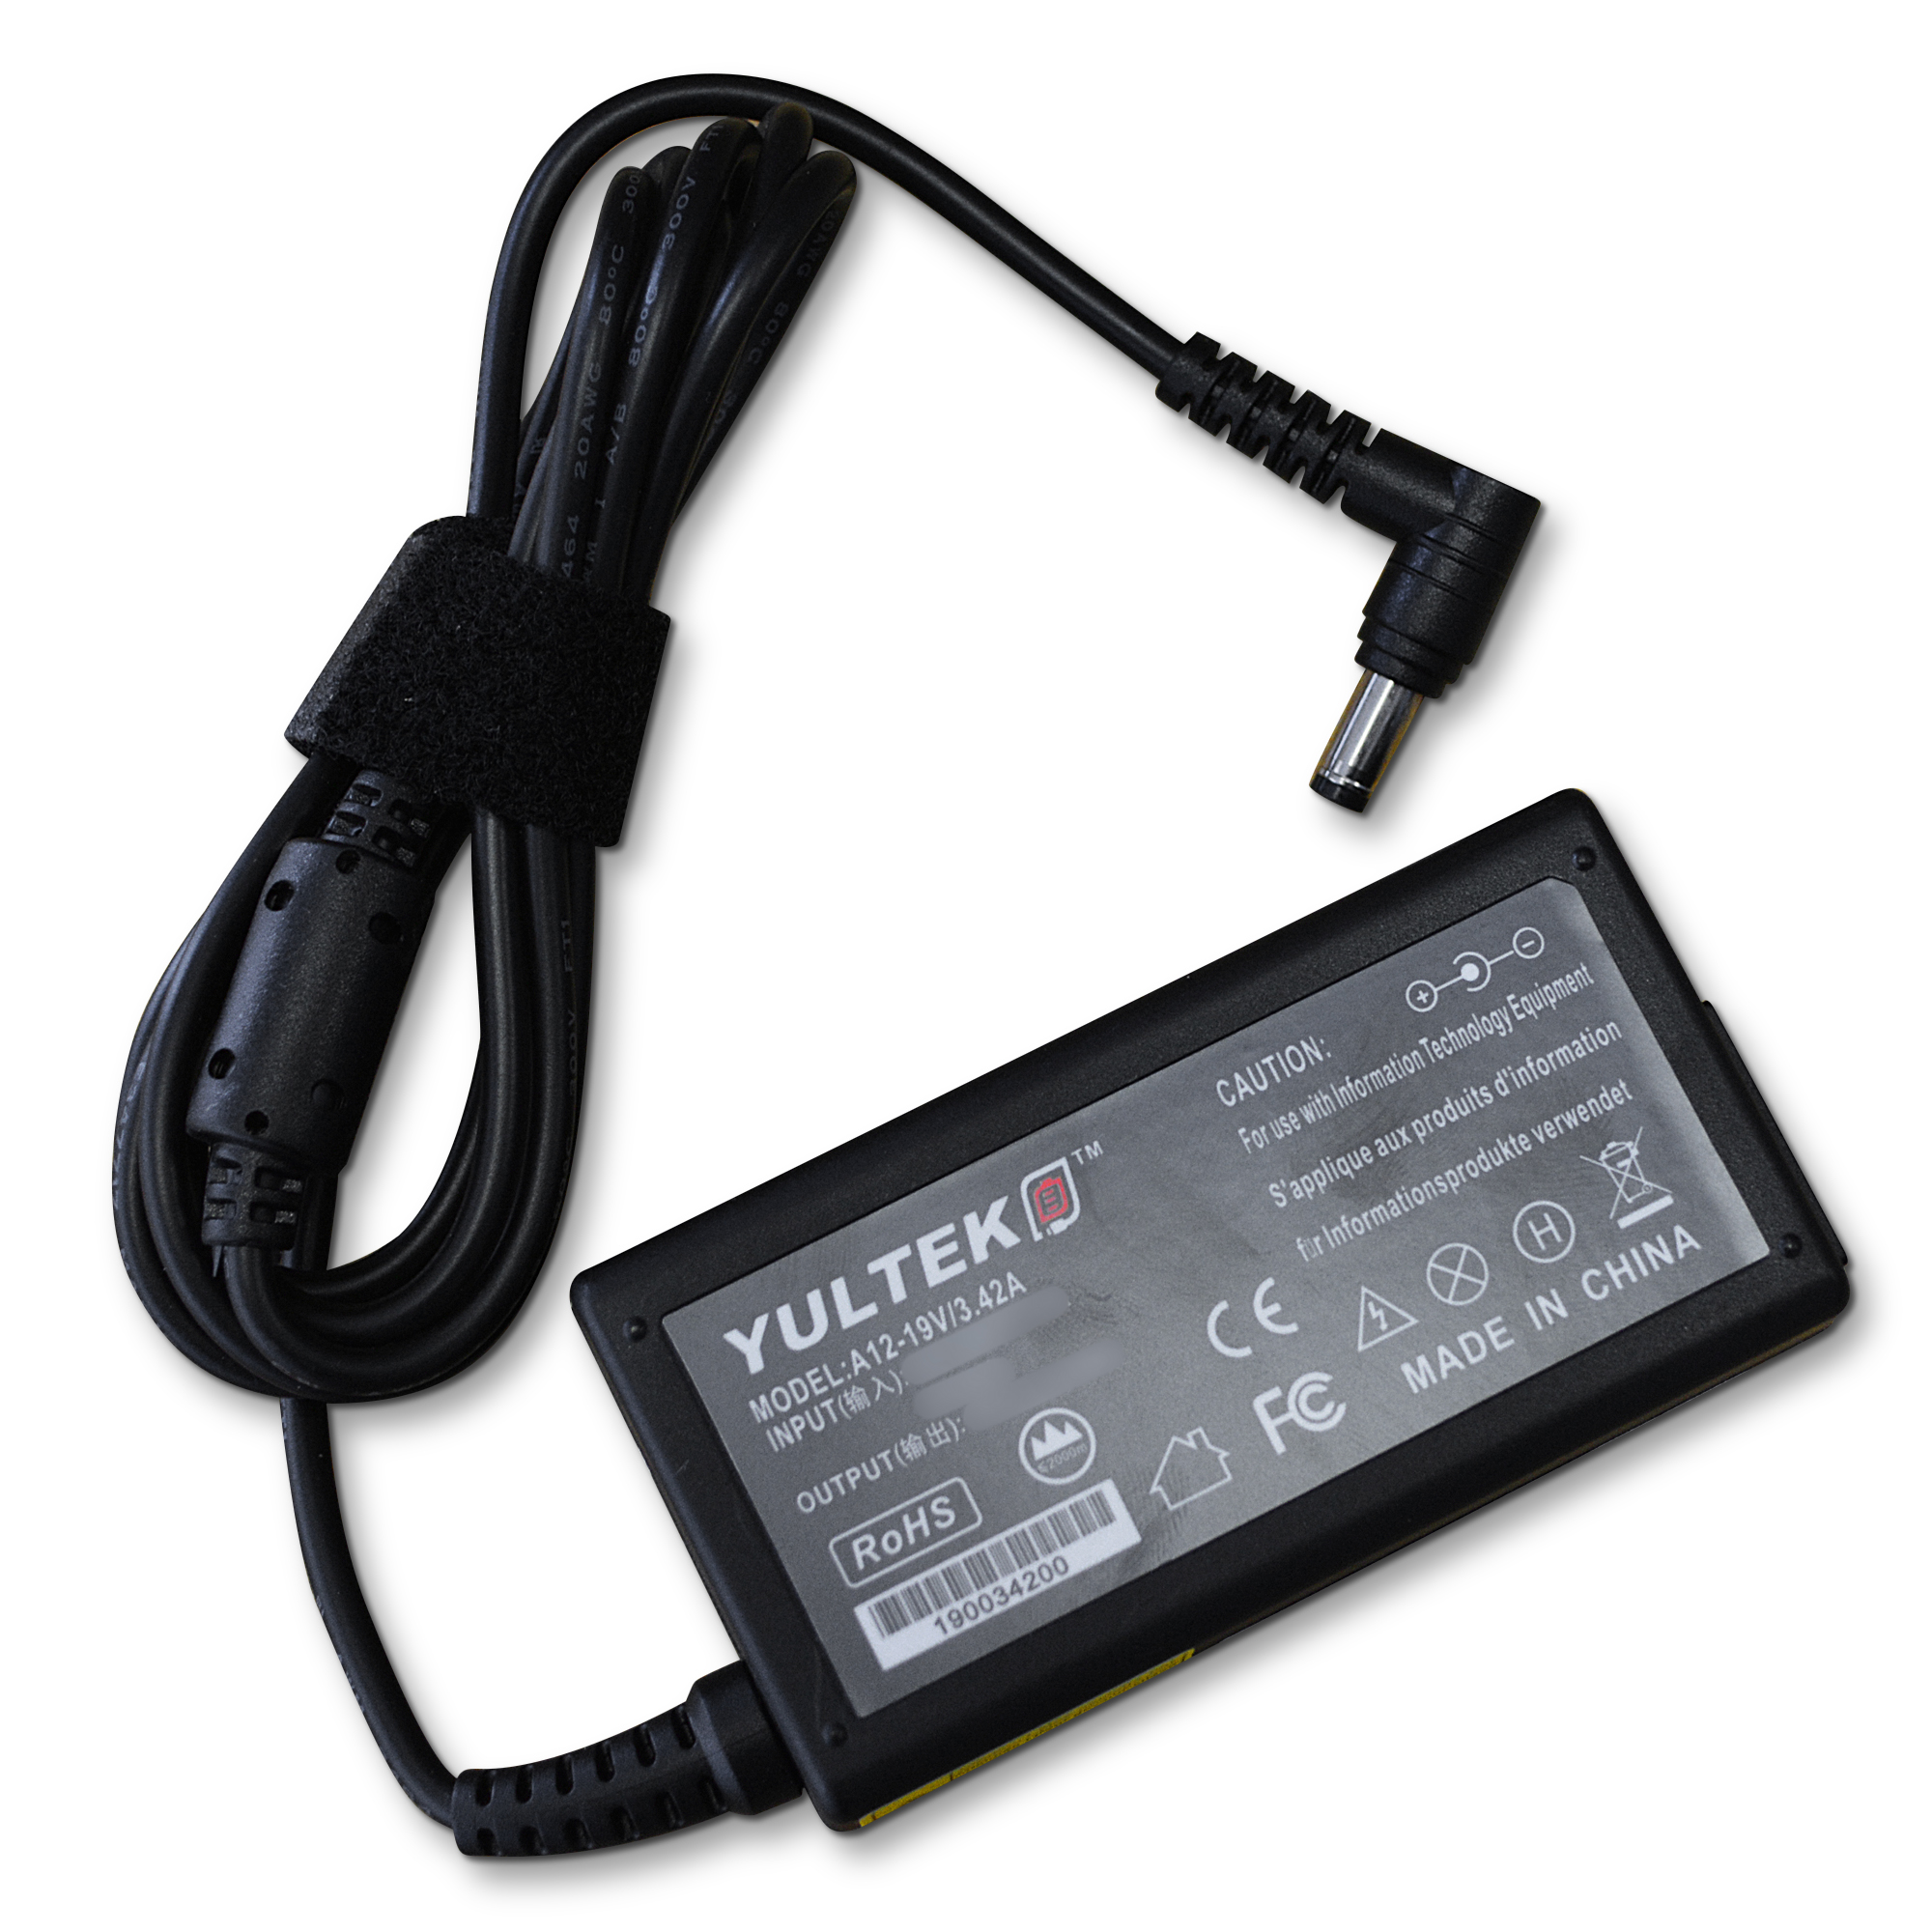 Fujitsu-Siemens Part Number UWL:76-01A65F-5A Laptop Charger